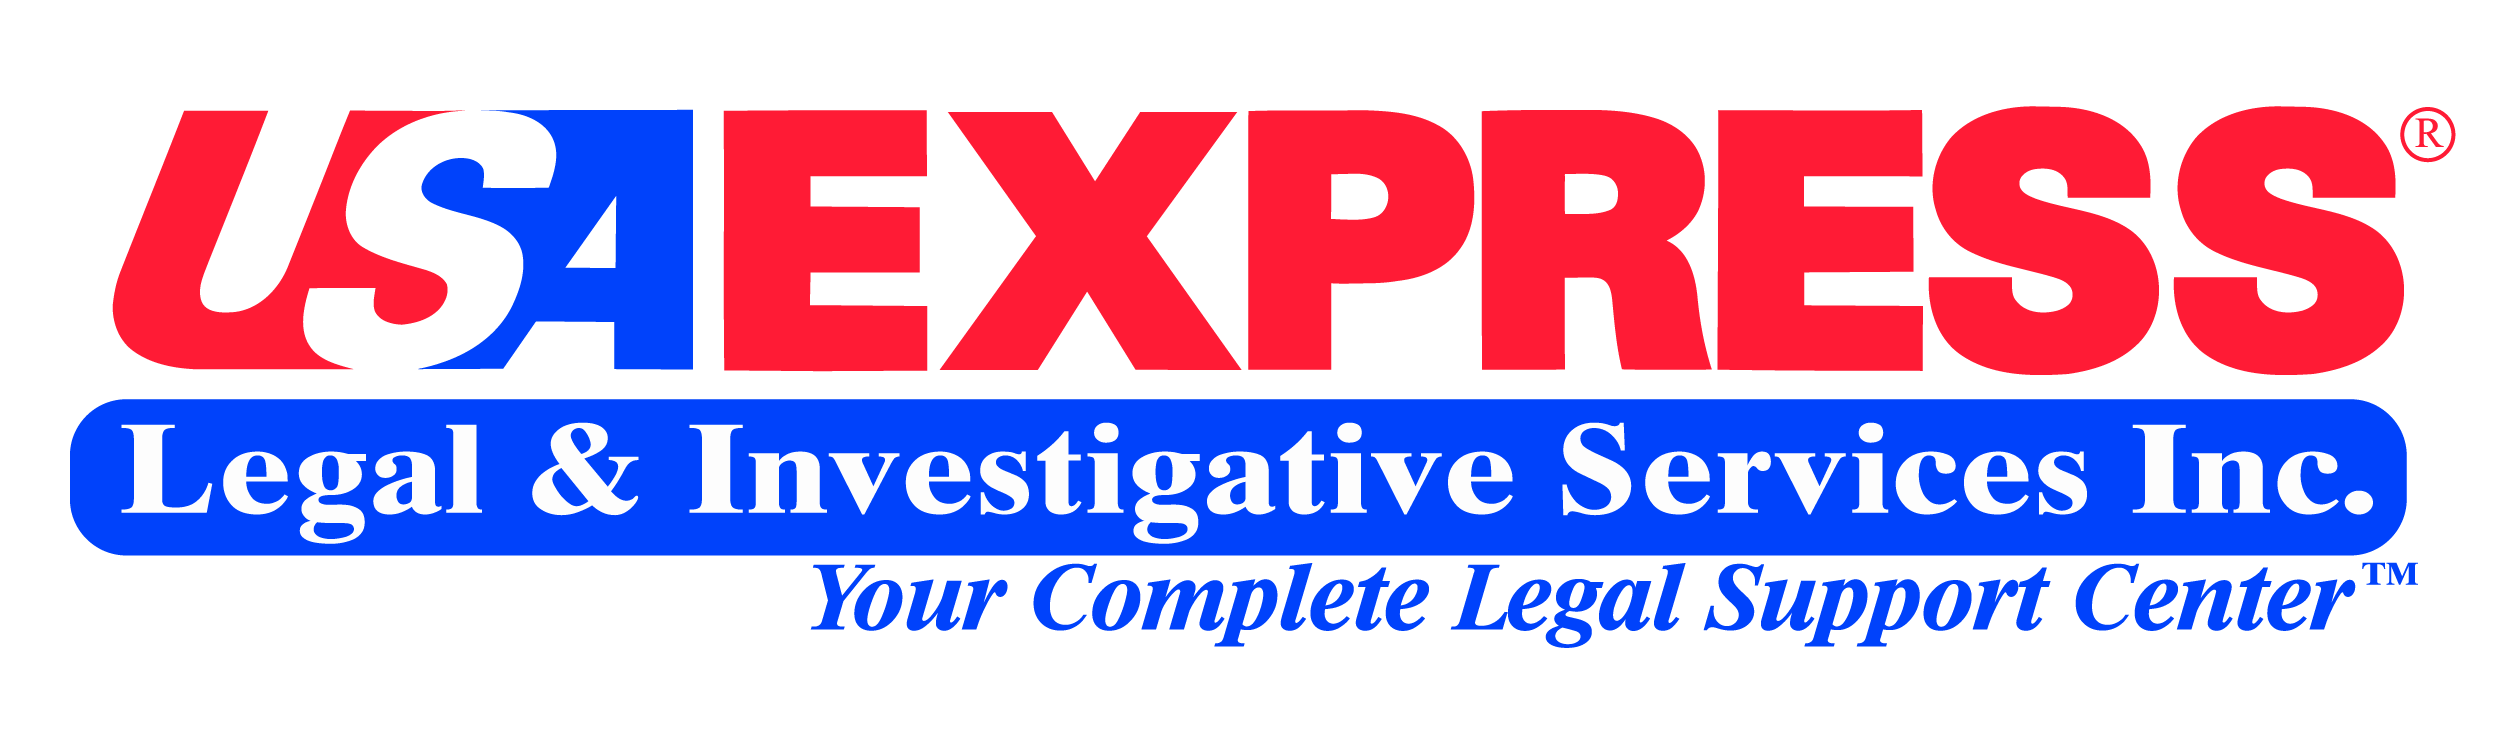 USA Express Legal & Investigative Support Services